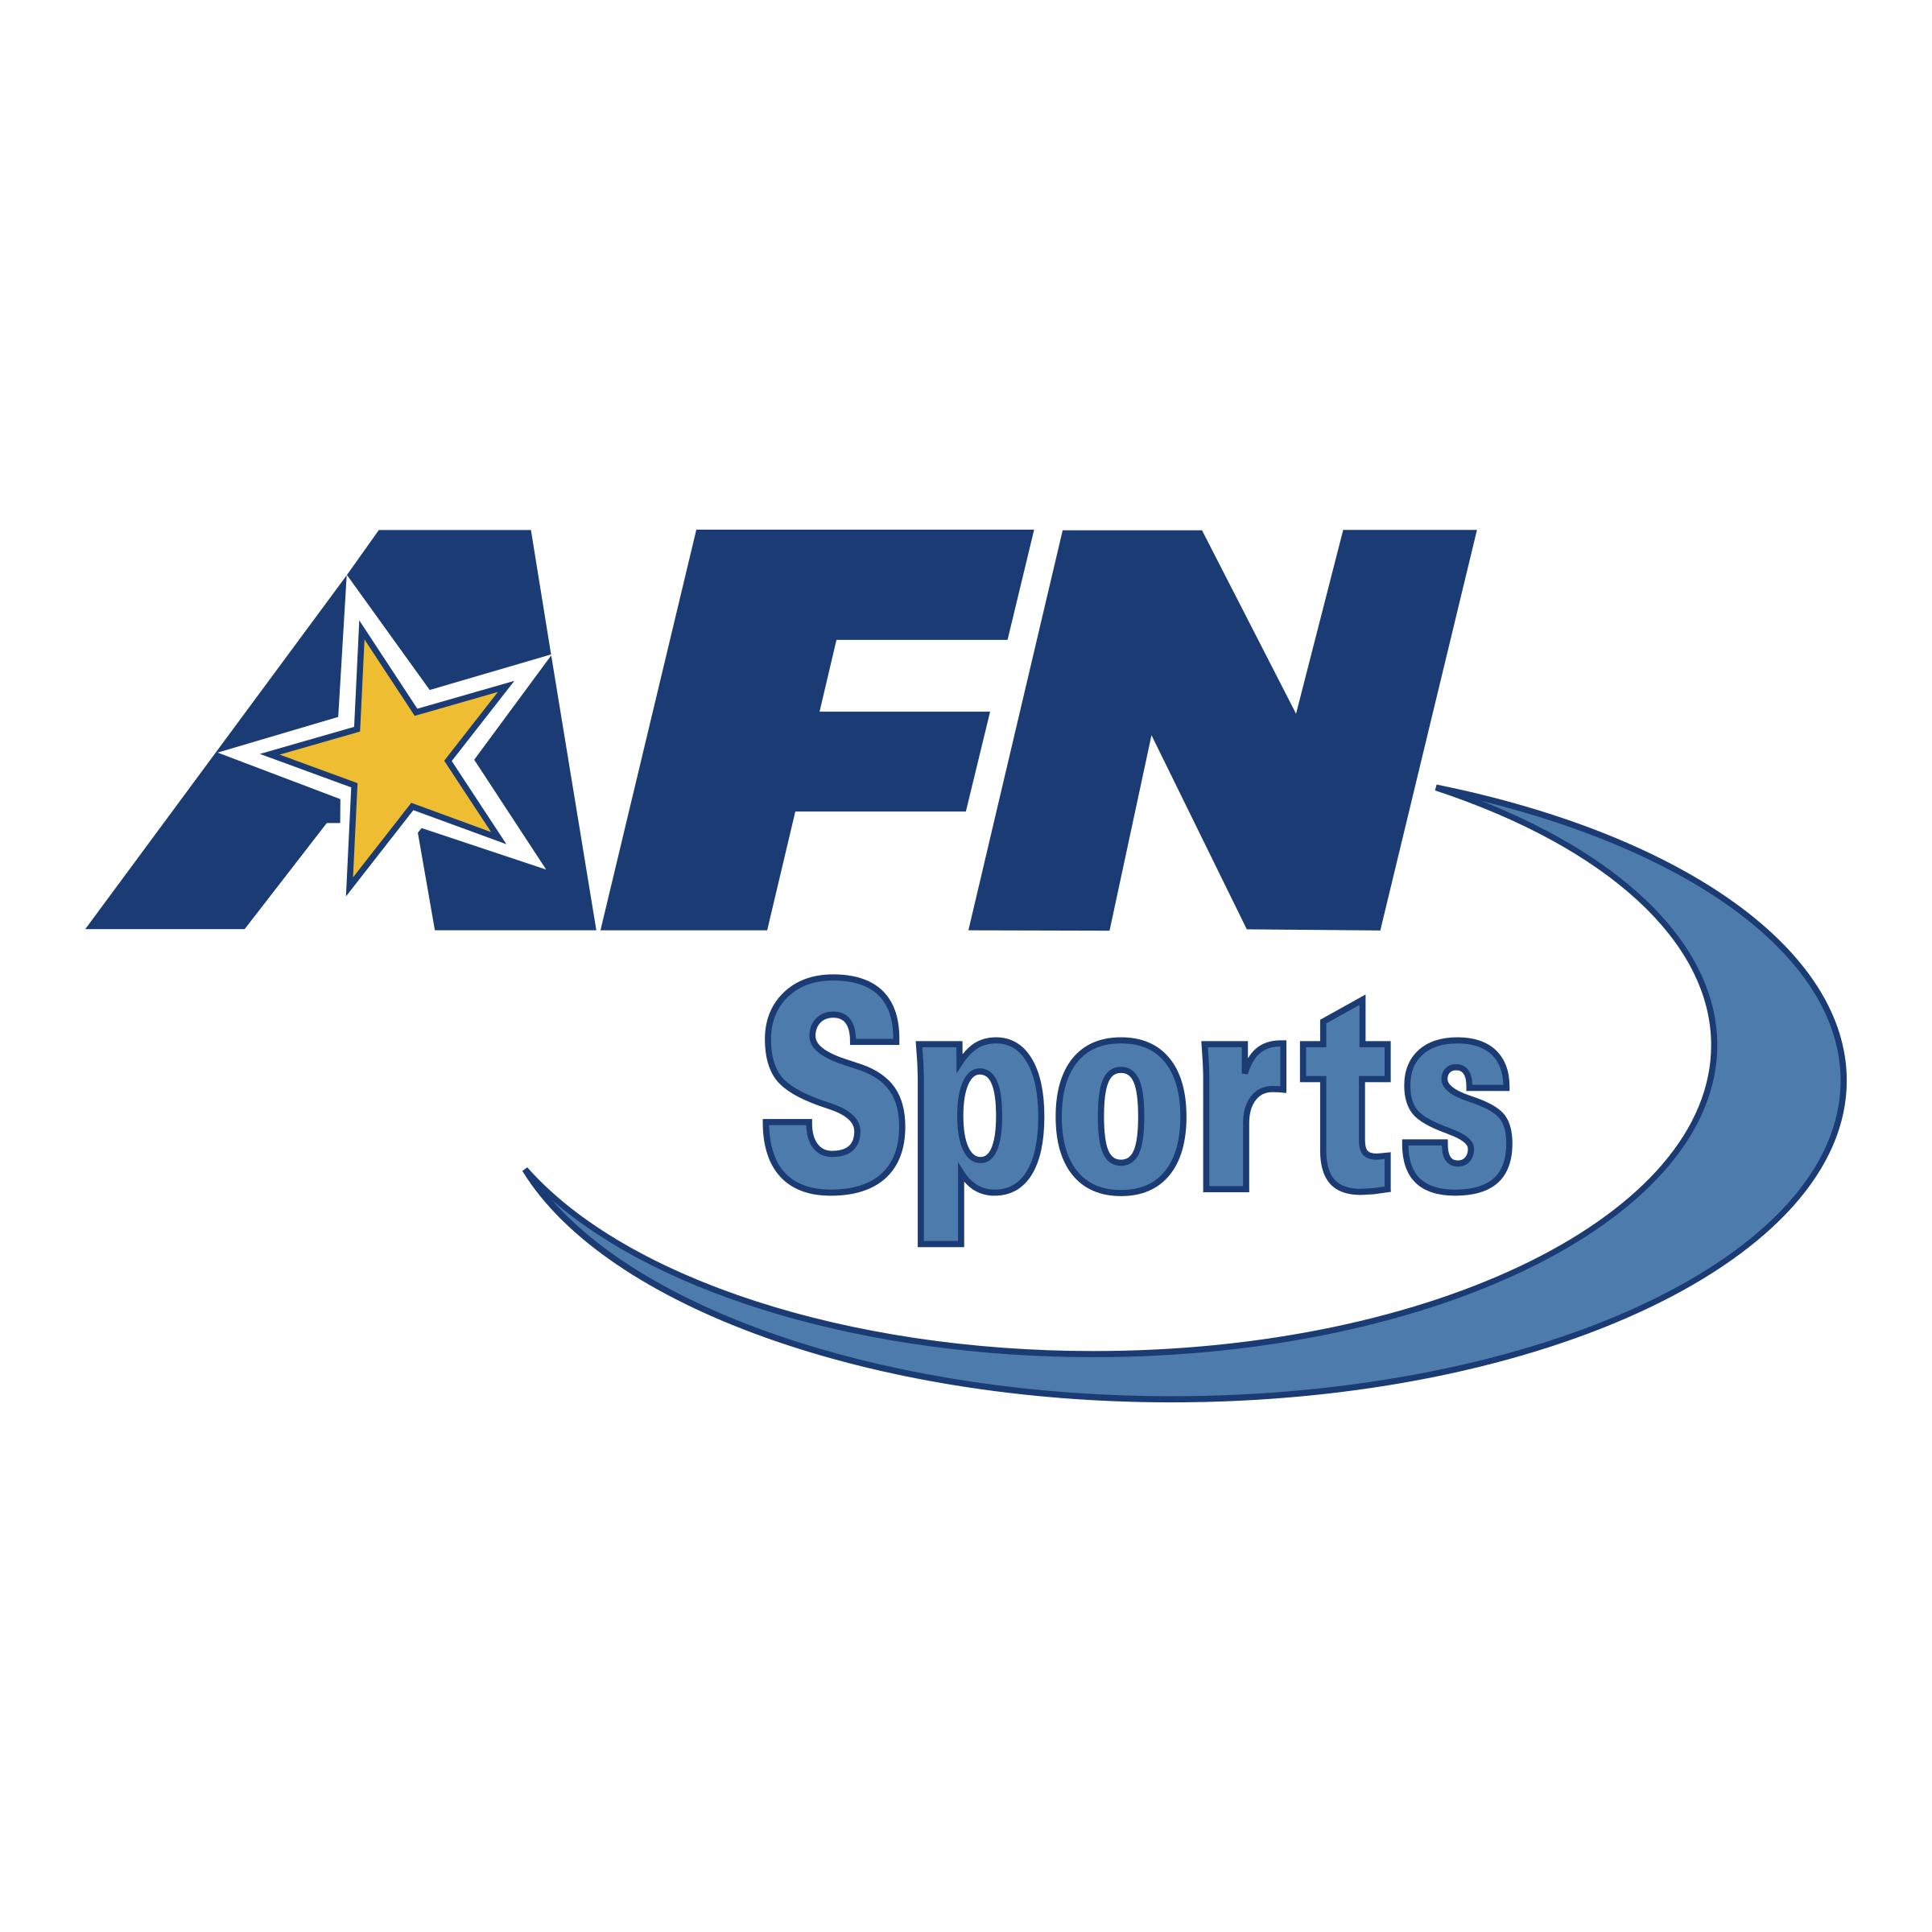 AFN Sports Logo PNG Transparent SVG Vector